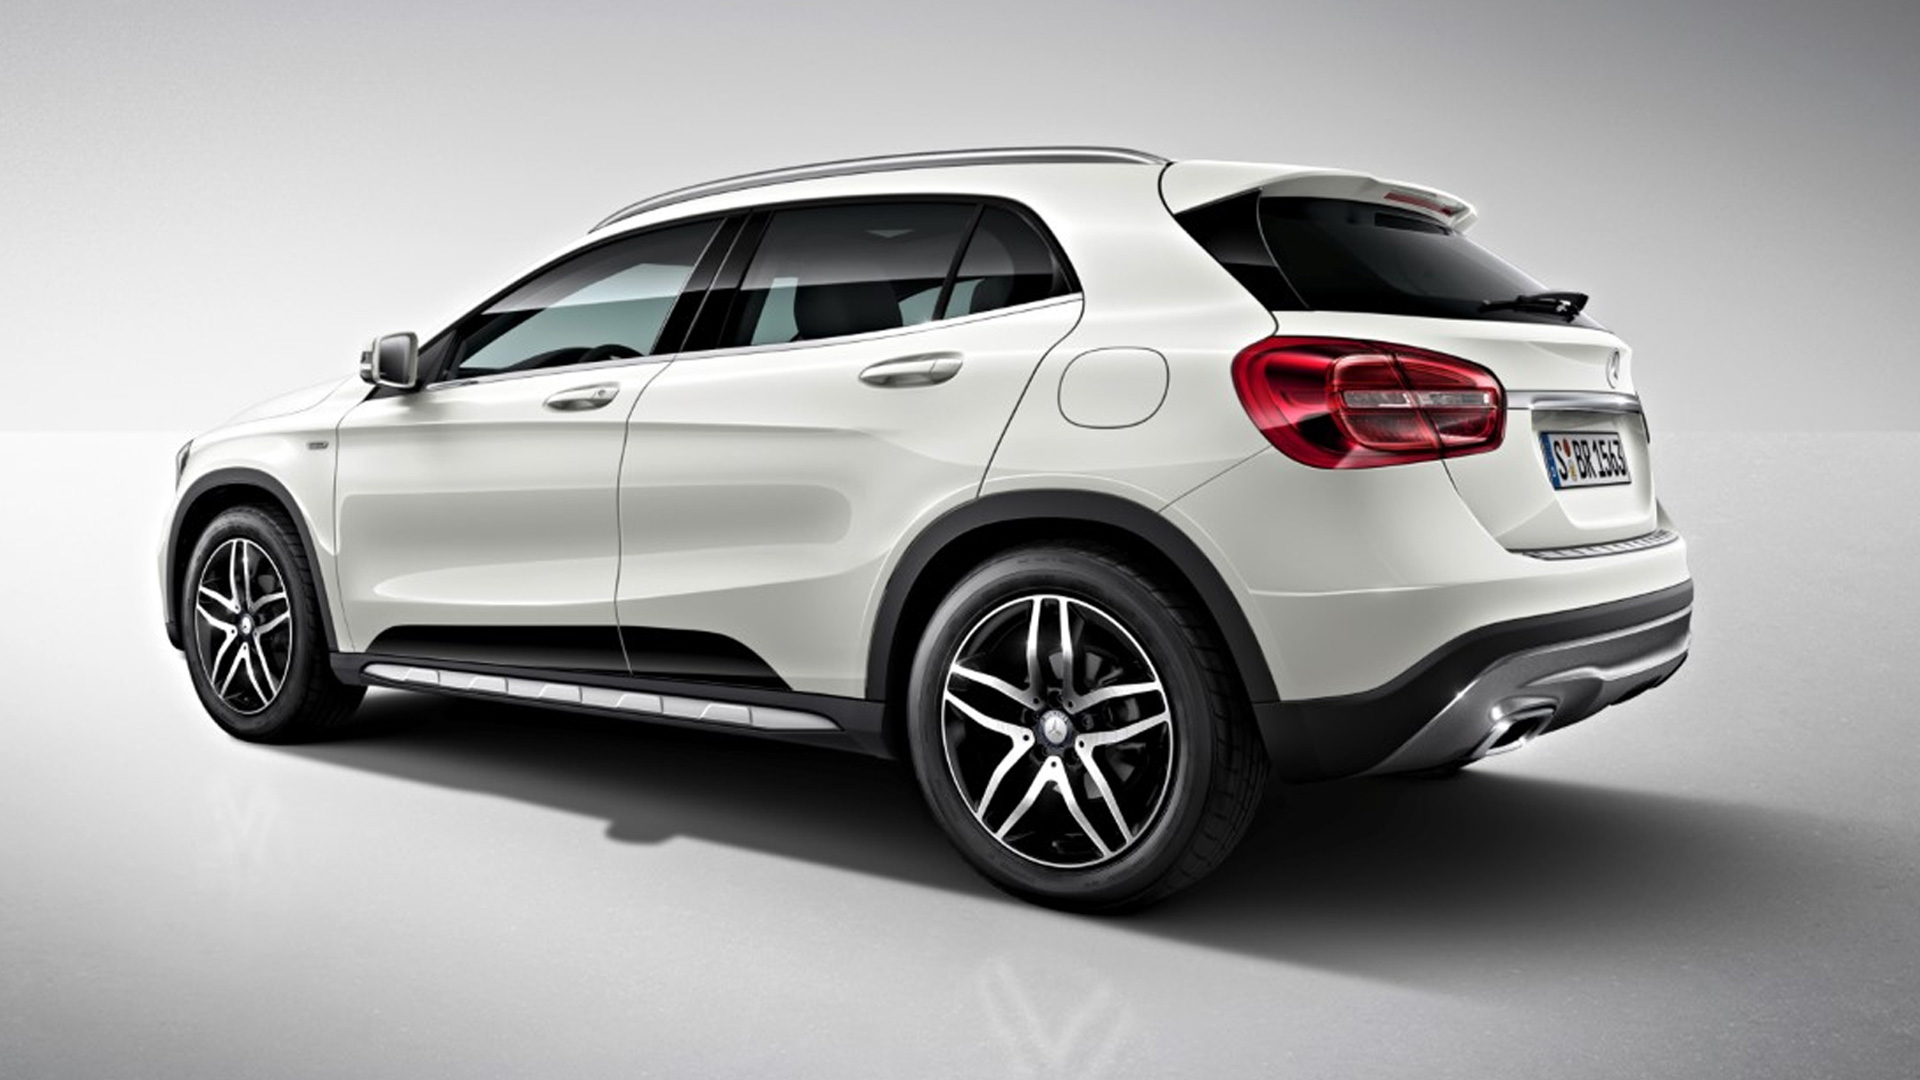 Mercedes Benz Gla 2018 Price Mileage Reviews